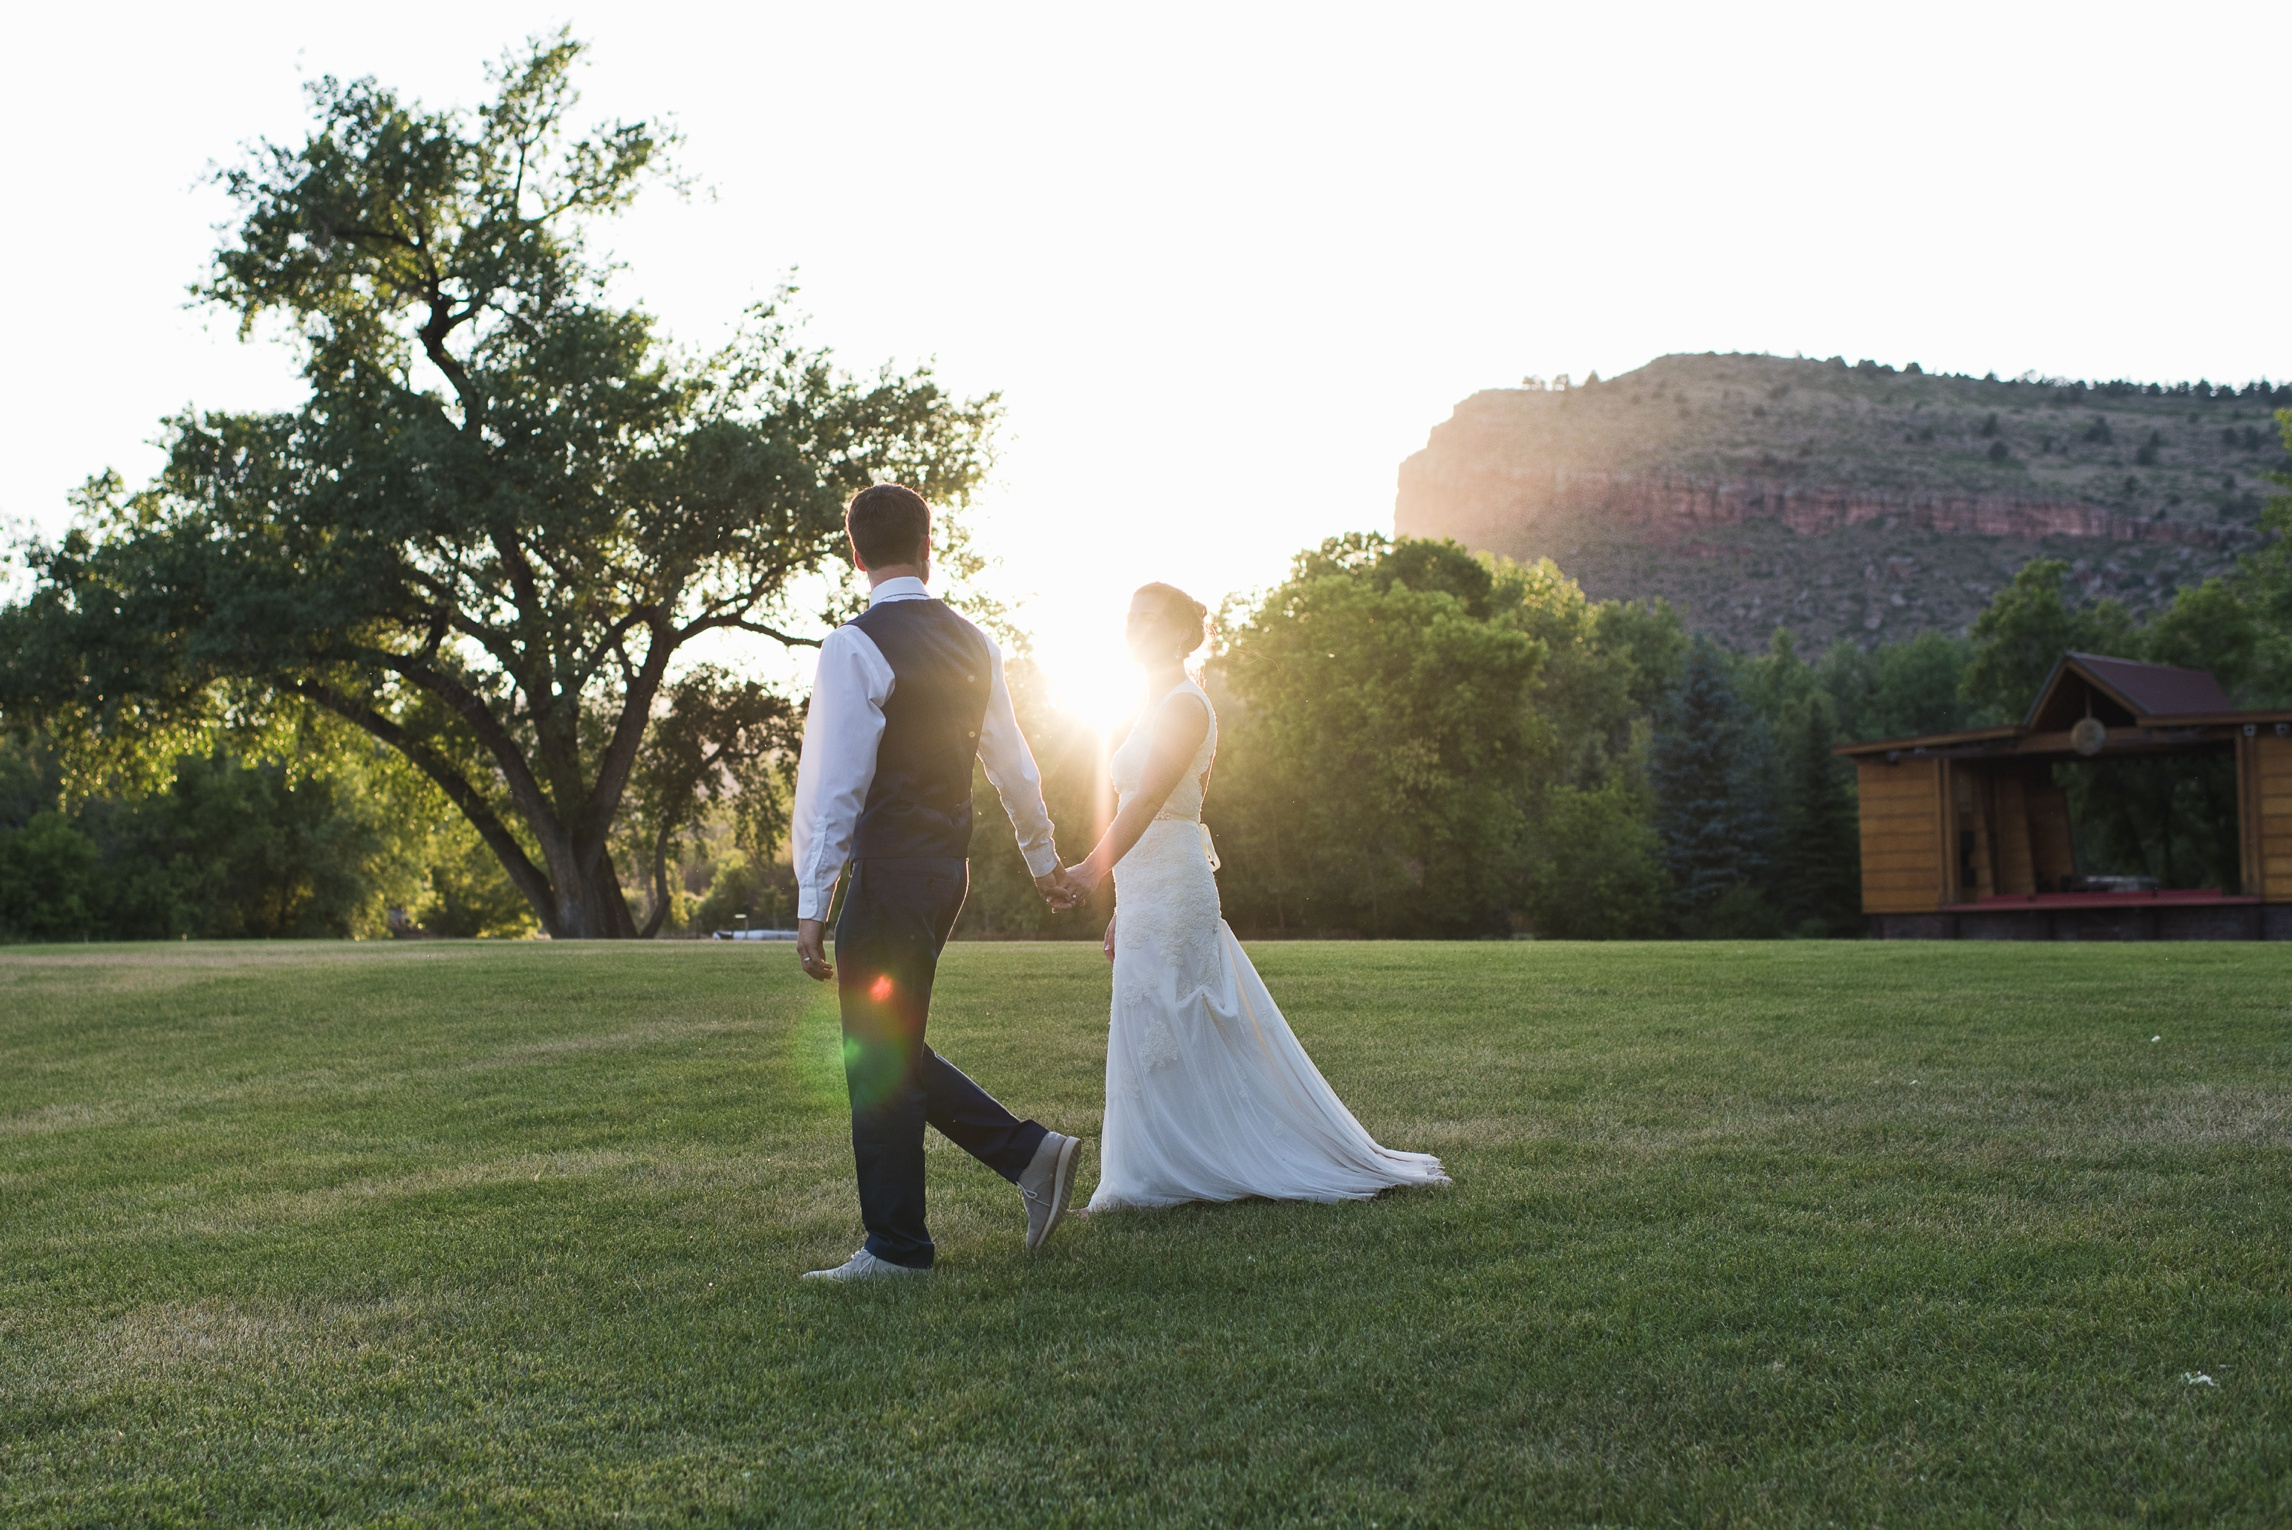 A bride and groom walk the grounds at Planet Bluegrass in Lyons, Colorado. Wedding photography by Sonja Salzburg of Sonja K Photography.